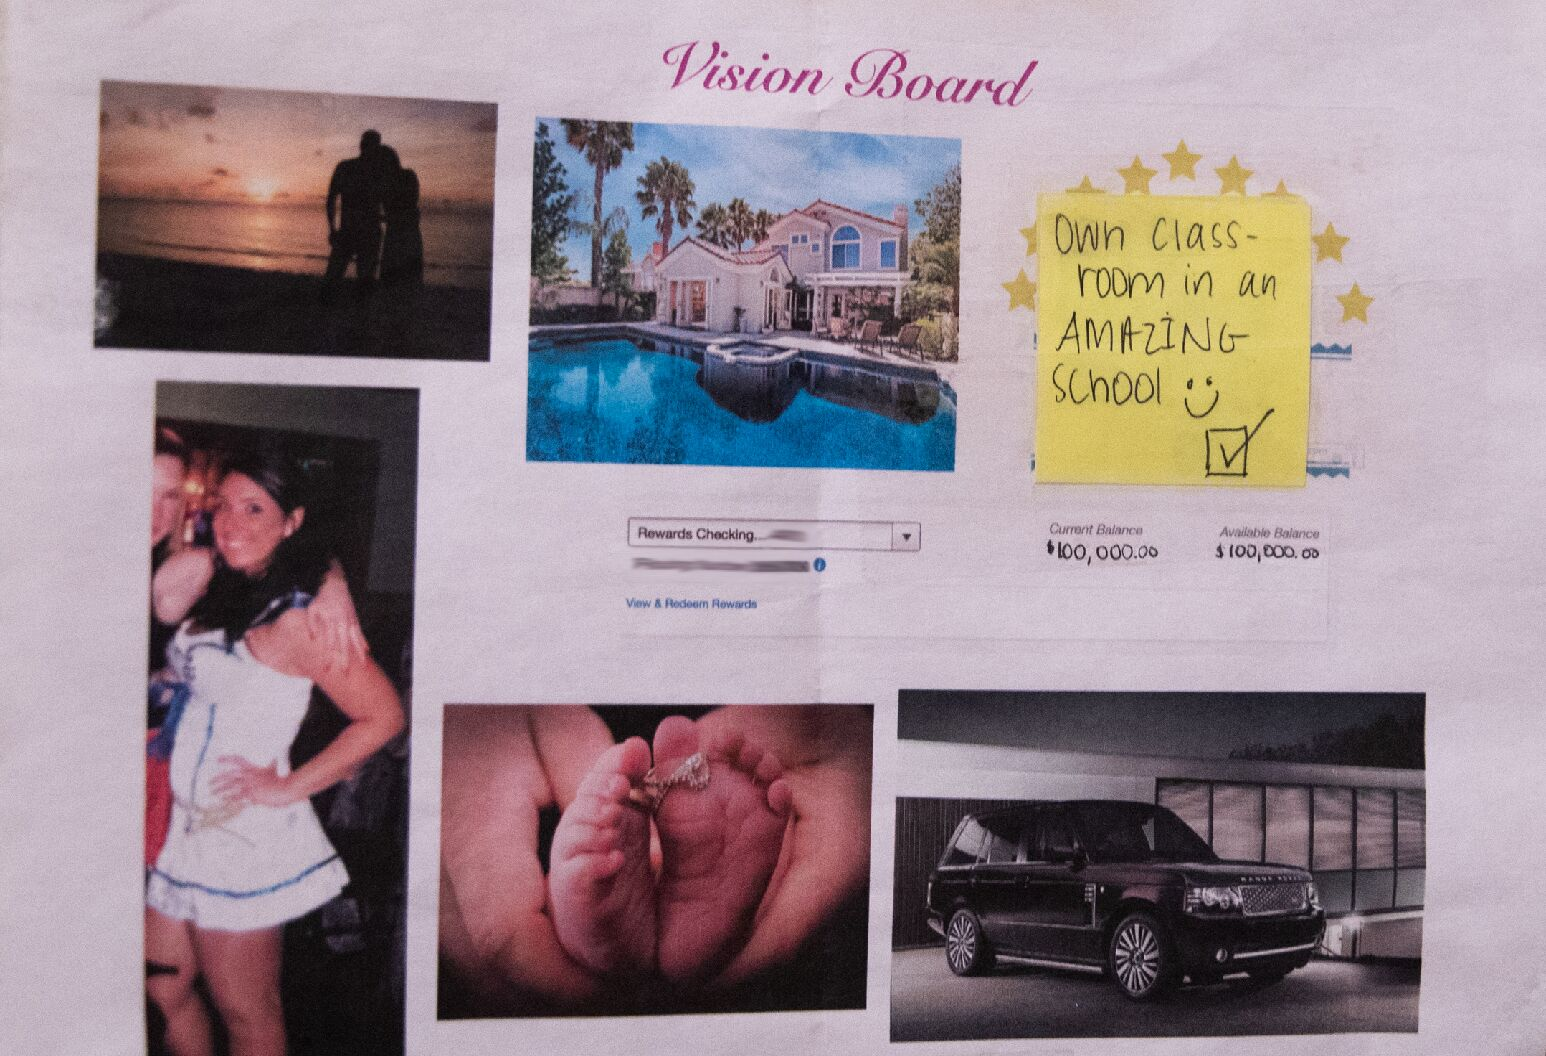 Vision board of goals and aspirations